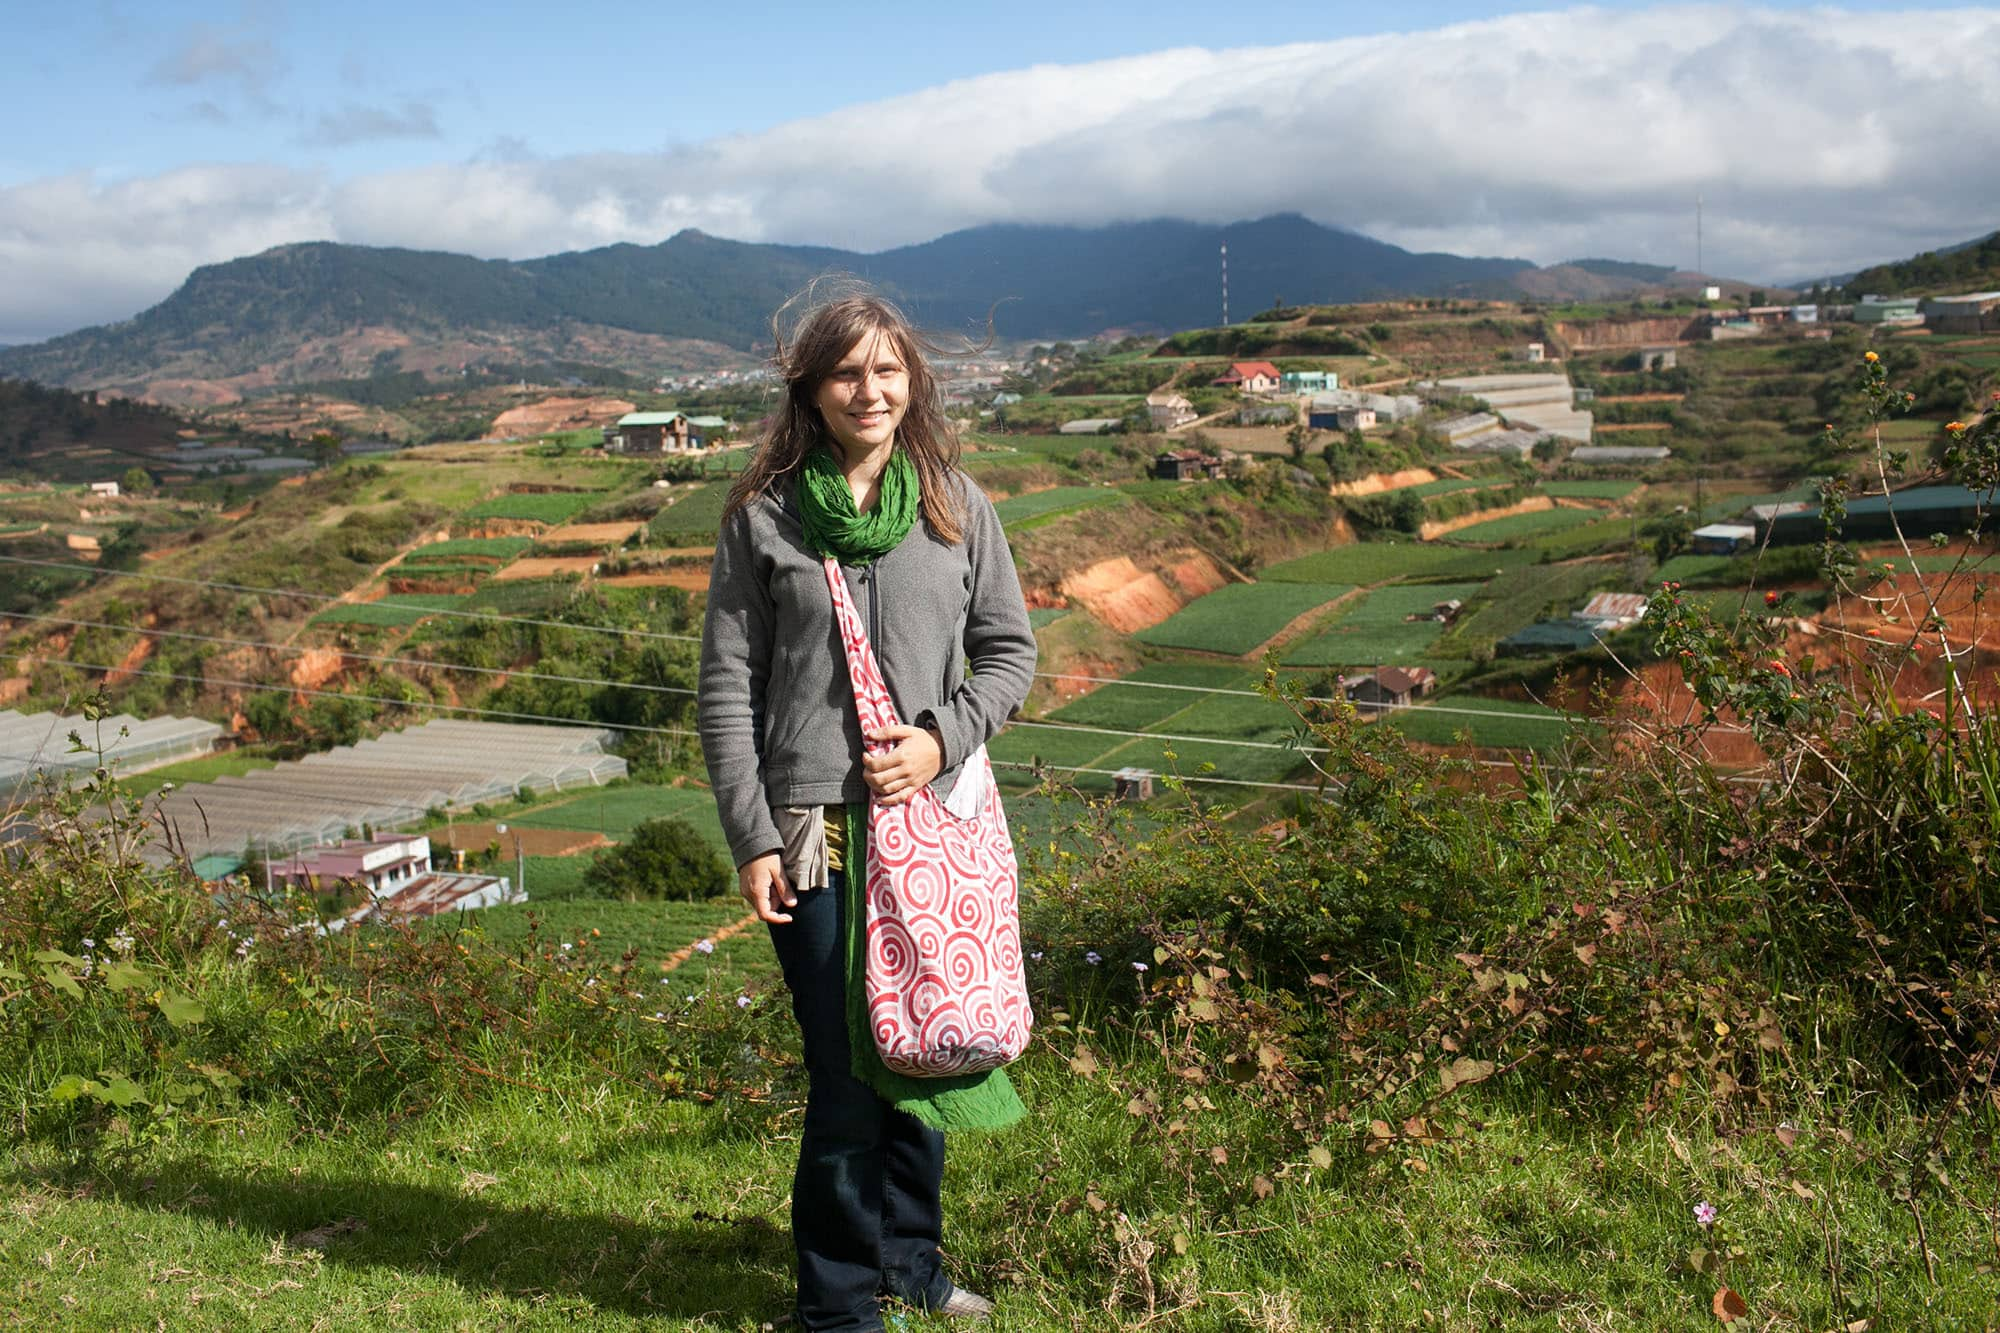 Countryside tour of Dalat, Vietnam